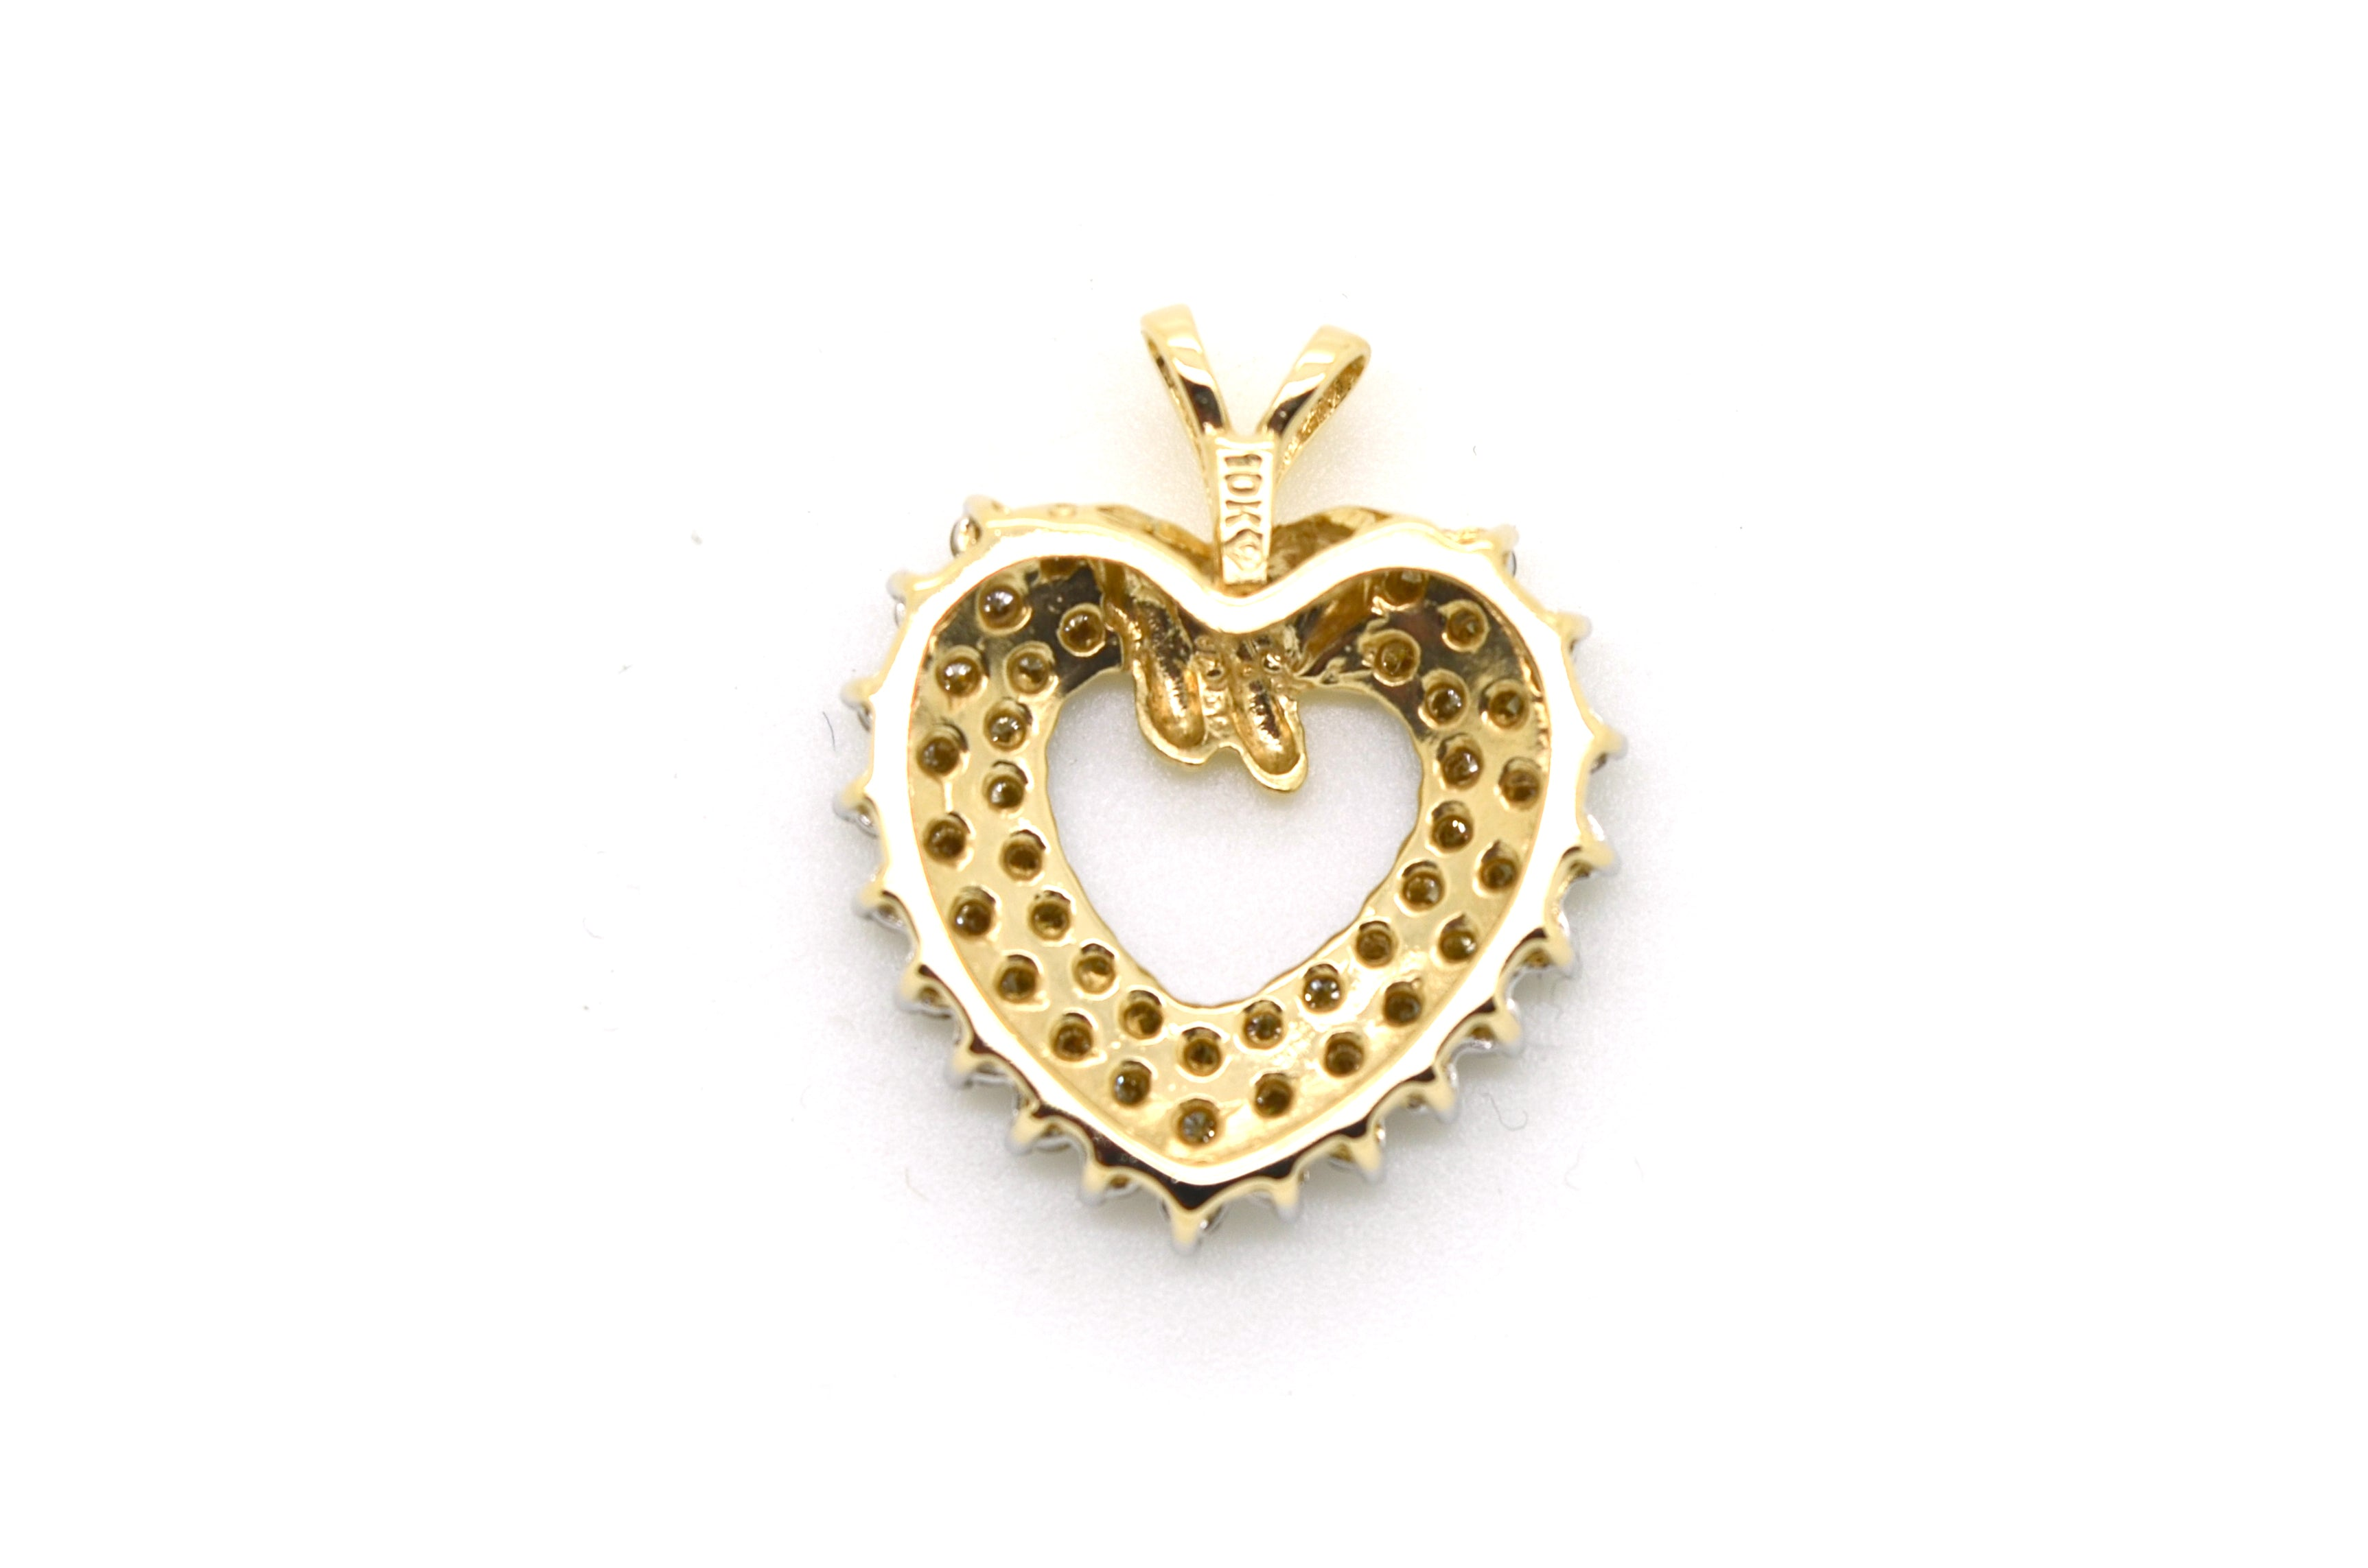 10k yellow gold heart shaped pendant with round diamonds 100 ct 10k yellow gold heart shaped pendant with round diamonds 100 ct total aloadofball Choice Image